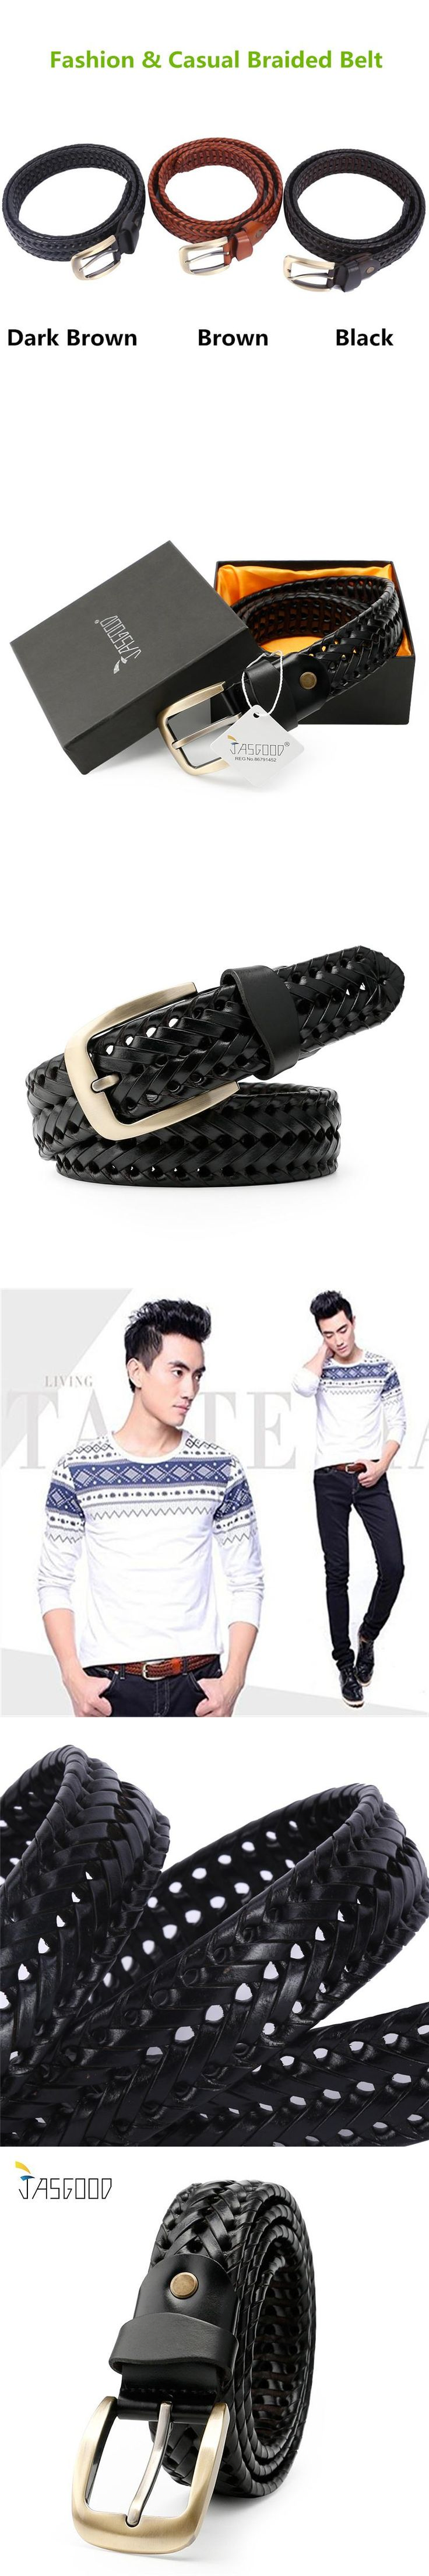 JASGOOD Braided Leather Belt For Men Woven Full Grain Leather Casual Belt For Jeans With Brass Finish Buckle Cinto